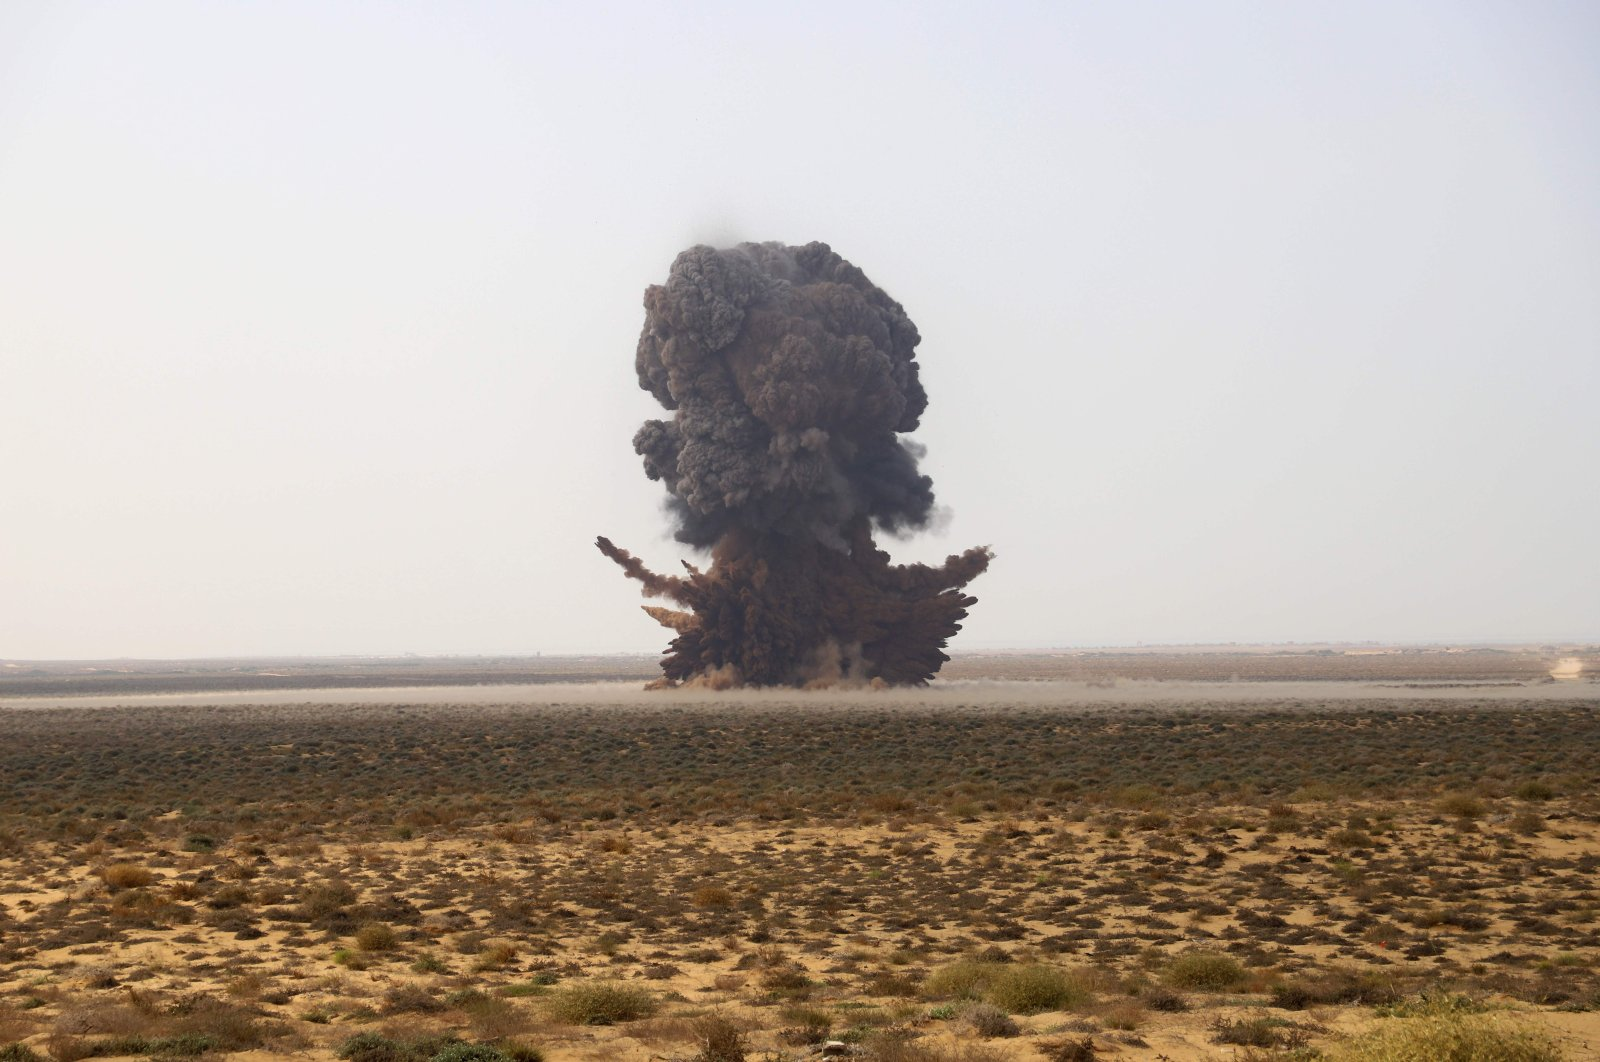 A joint Saudi-backed Sudanese-Yemeni military experts force removes and deactivates some 5,000 landmines which they said were planted by the Iran-aligned Houthi rebels in Yemen's northern coastal town of Midi, located in conflict-ridden Hajjah governorate near the border with Saudi Arabia on the Red Sea on Jan. 30, 2021. (AFP Photo)